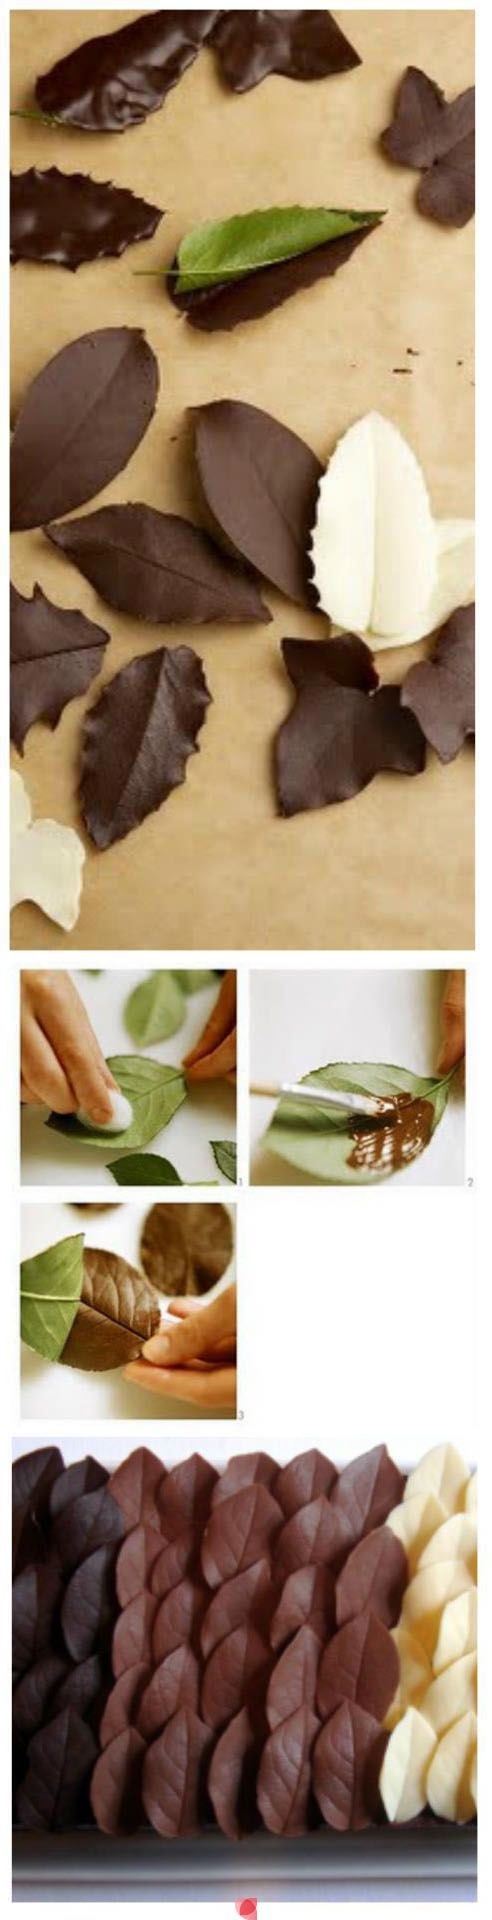 Make sure the real leaves are not delicate, but thick and pliable.  Waxy, not brittle.